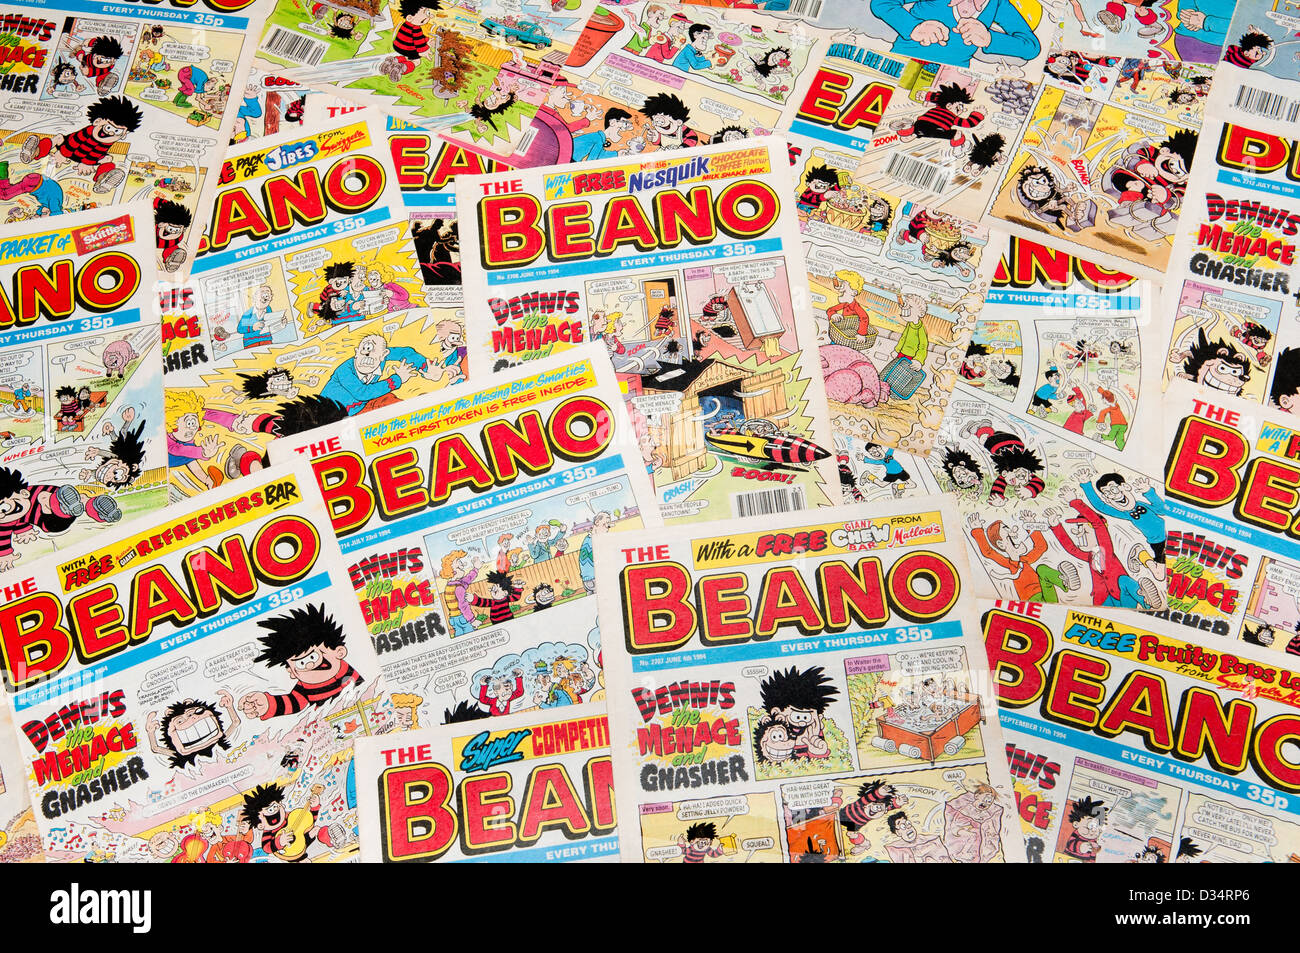 A collection of Beano comics - Stock Image